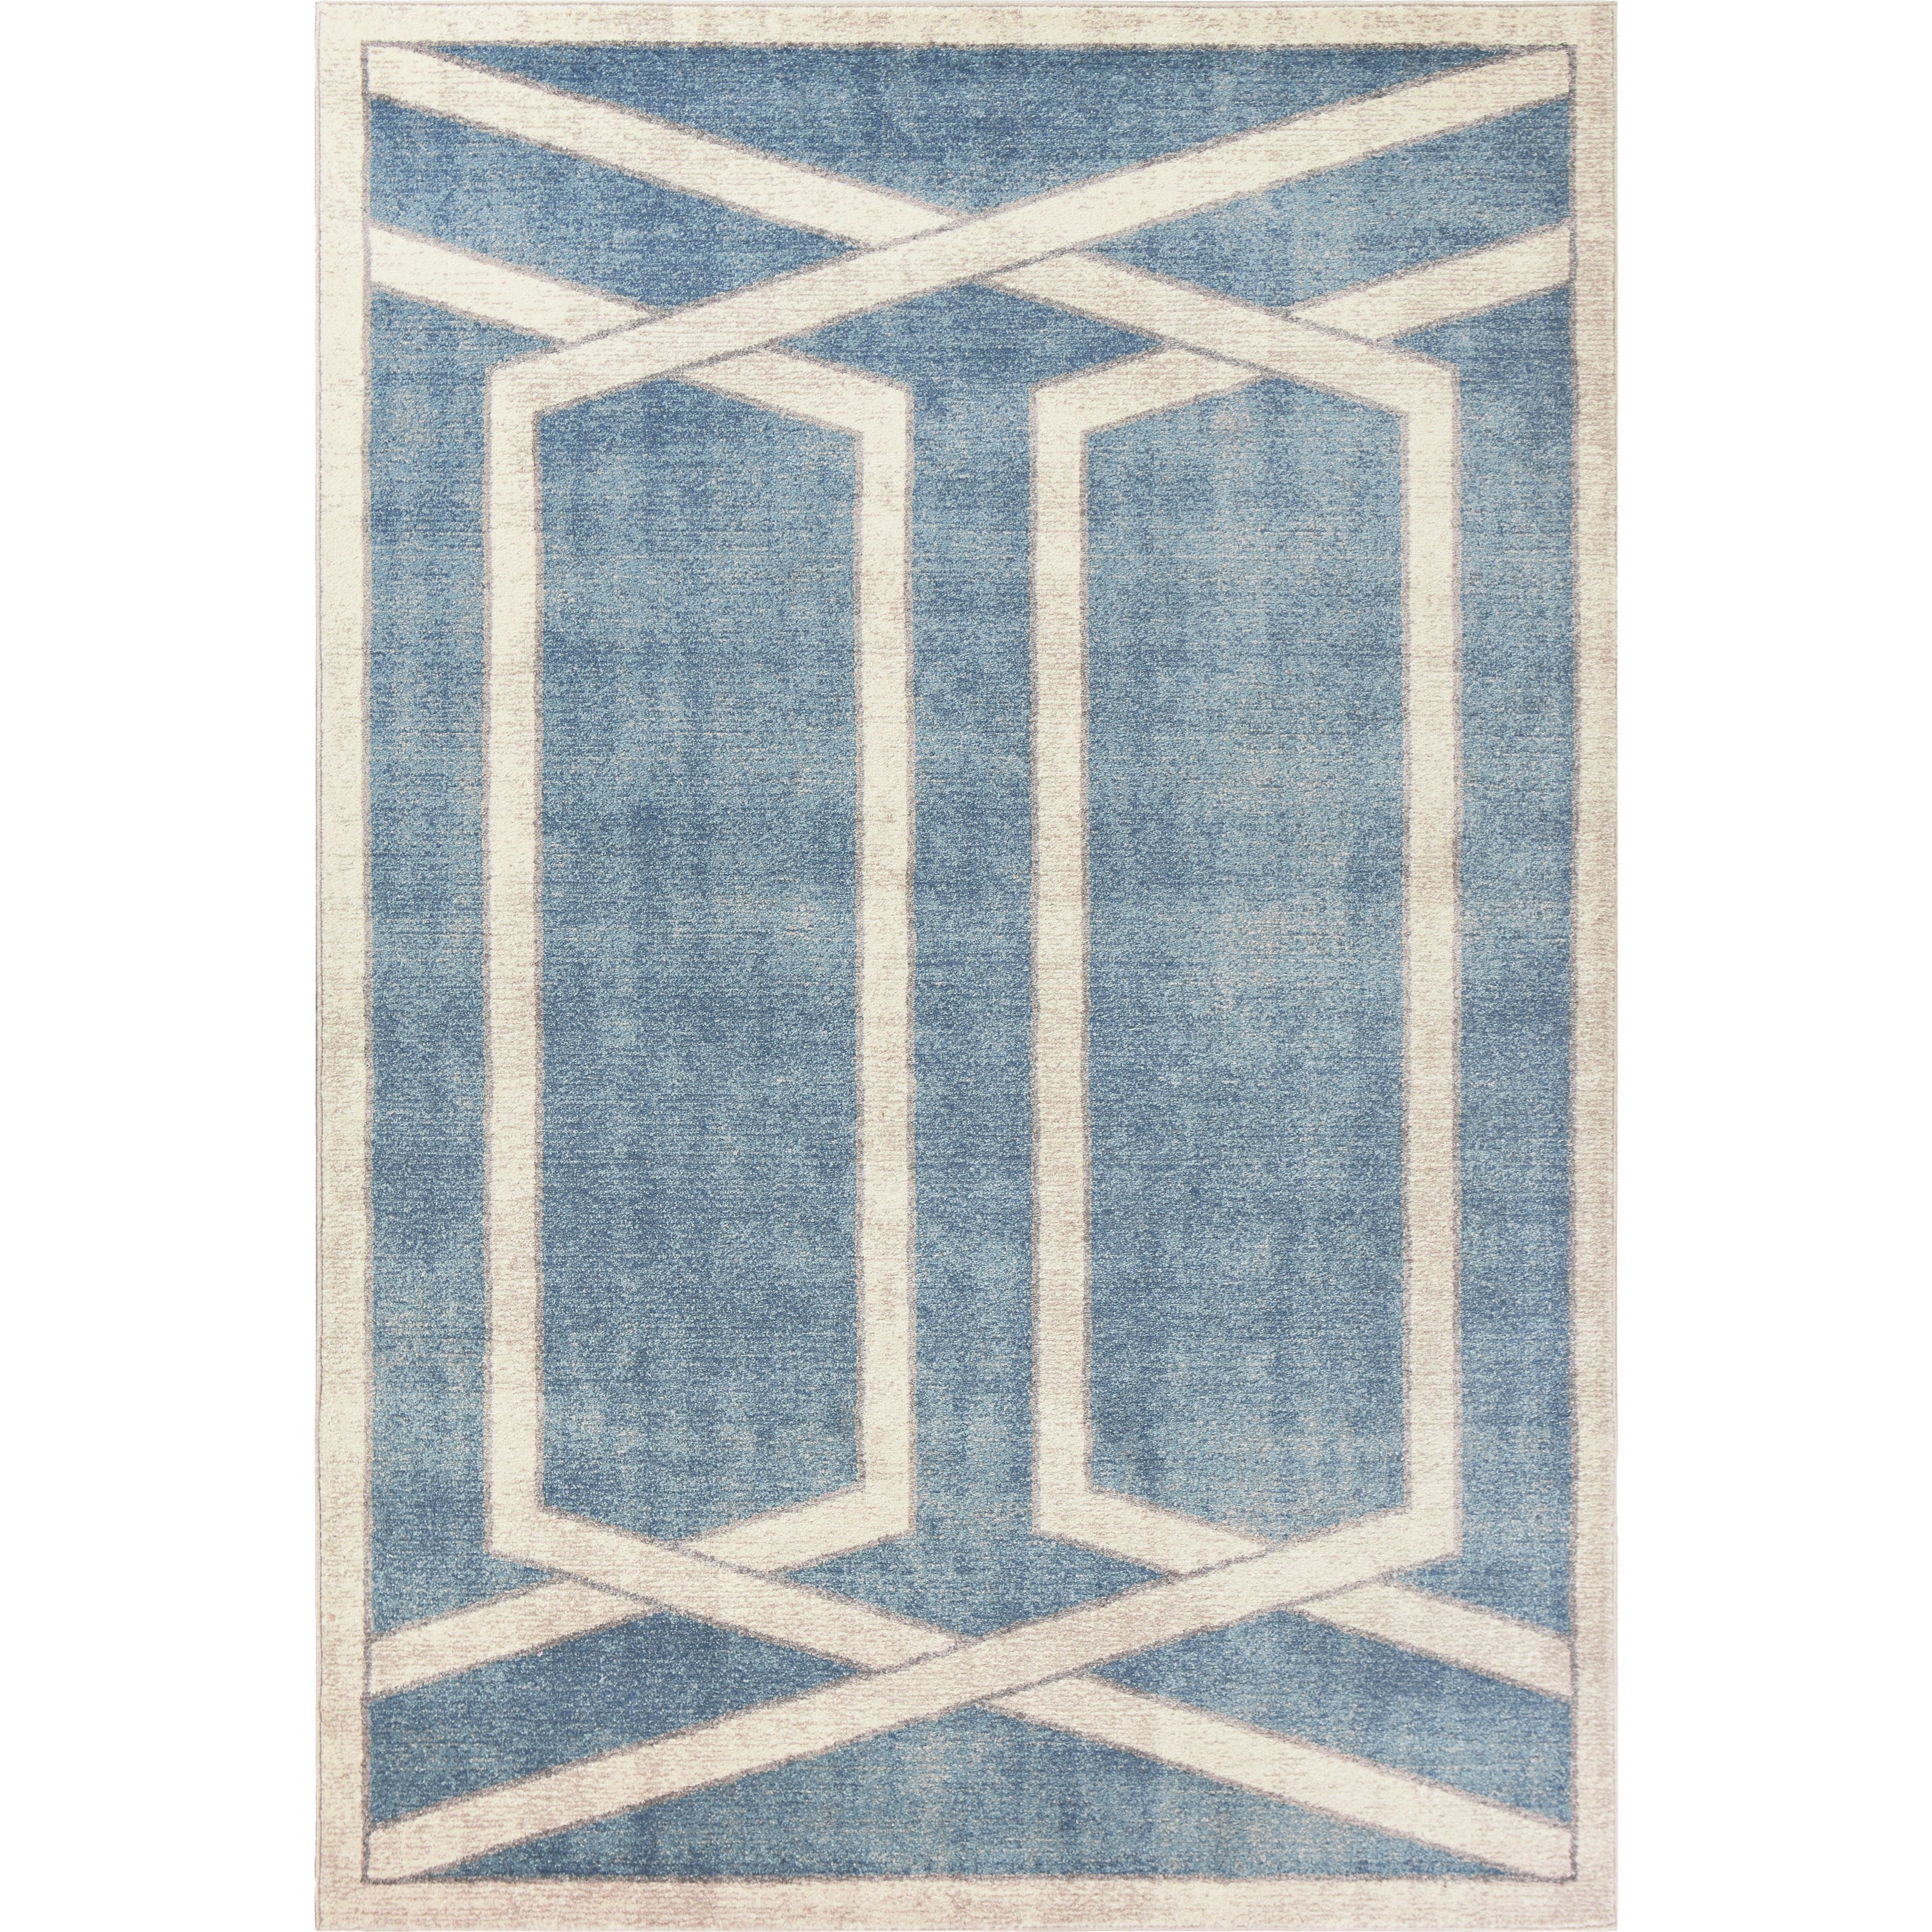 """Libby Langdon Winston 13' X 8'9"""" Area Rug by Kas at Zak's Home"""